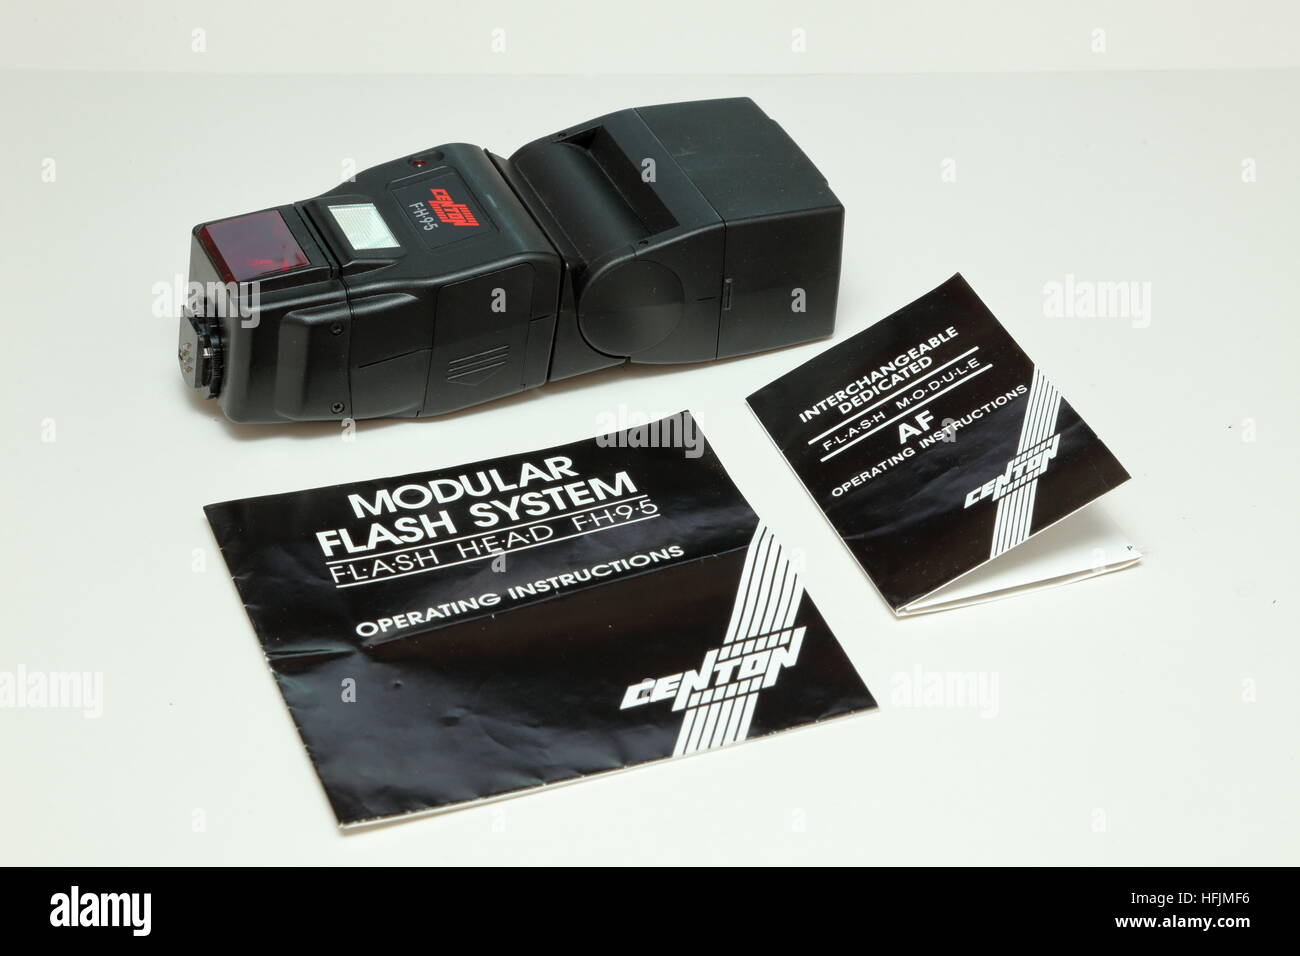 Centon (Jessops) FH95 electronic flashgun displayed with instruction booklets from 1990s - Stock Image